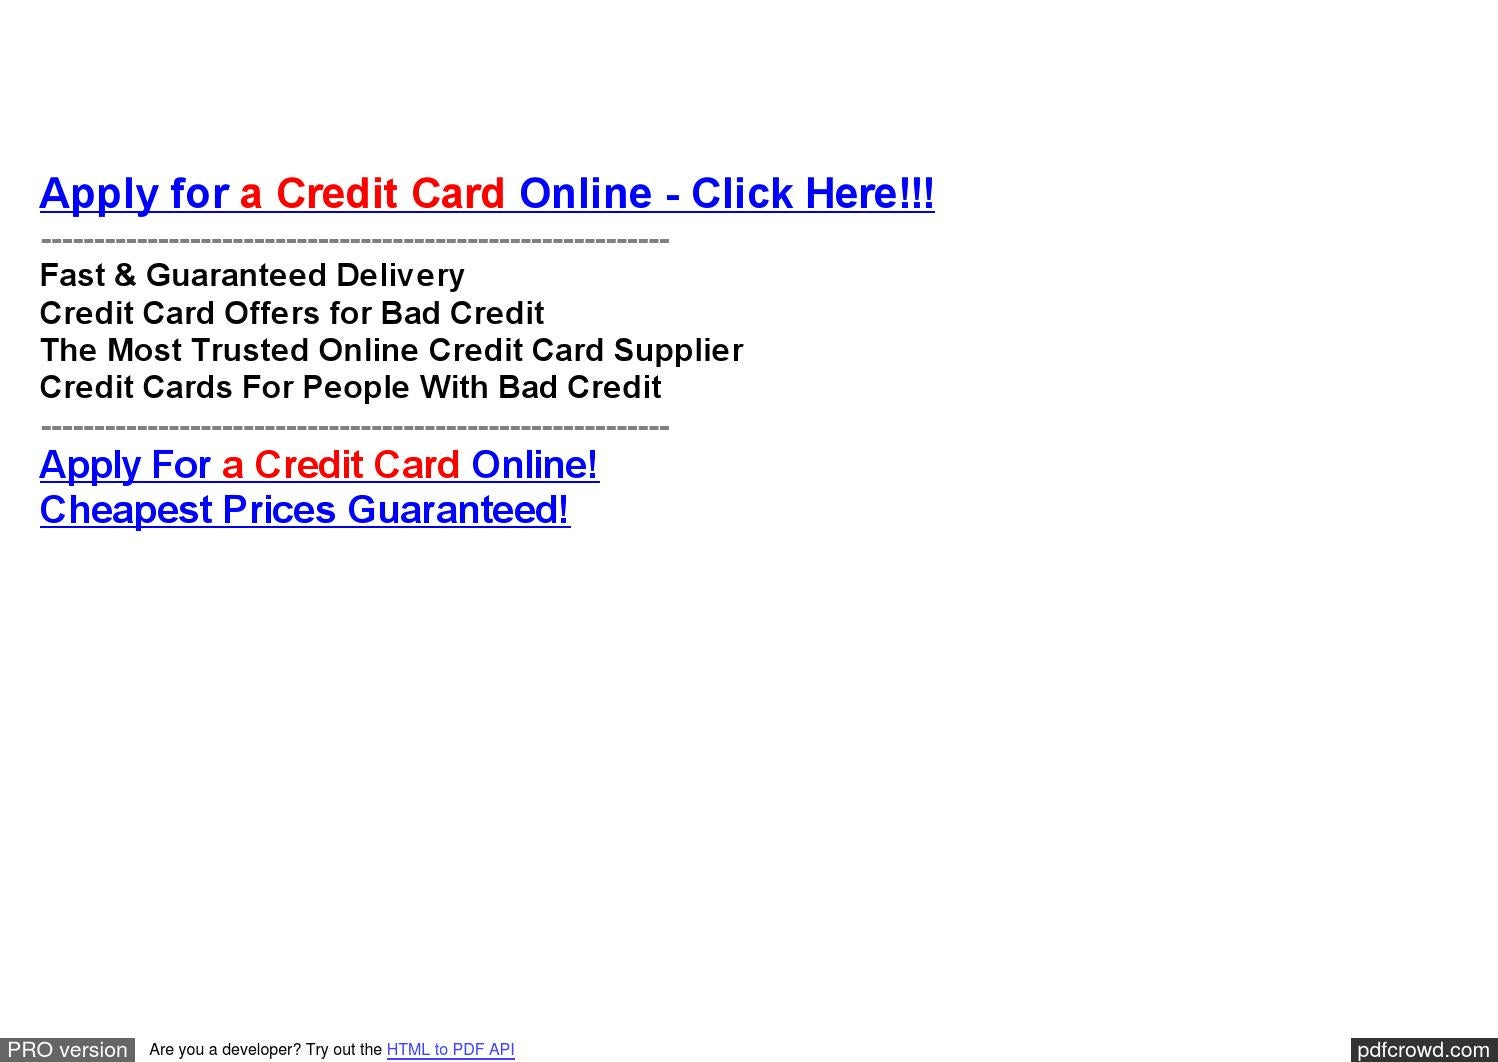 Best Buy Credit Card : Secured Credit Card : Amazon Credit Card lo8b